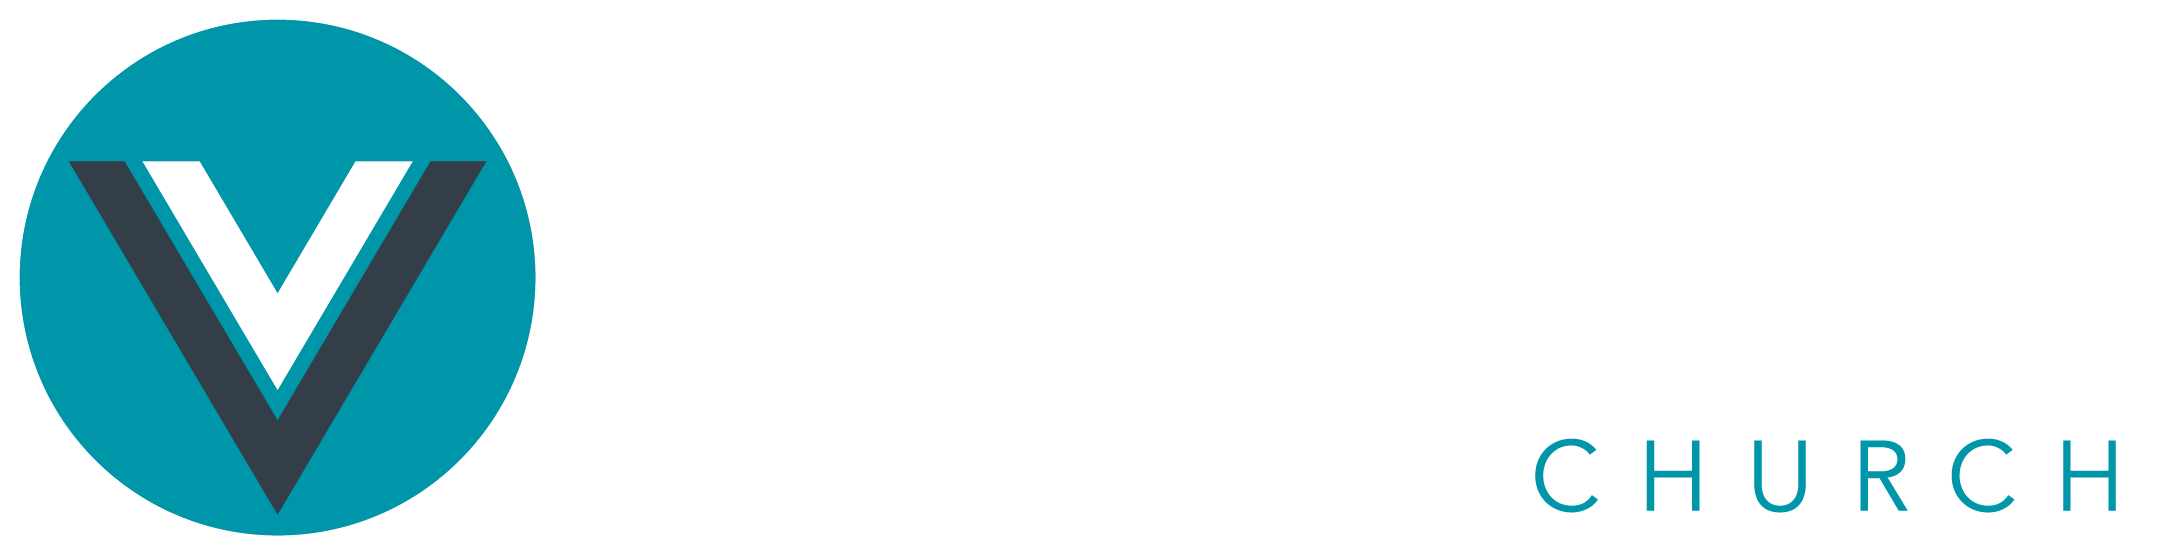 Valley View Church